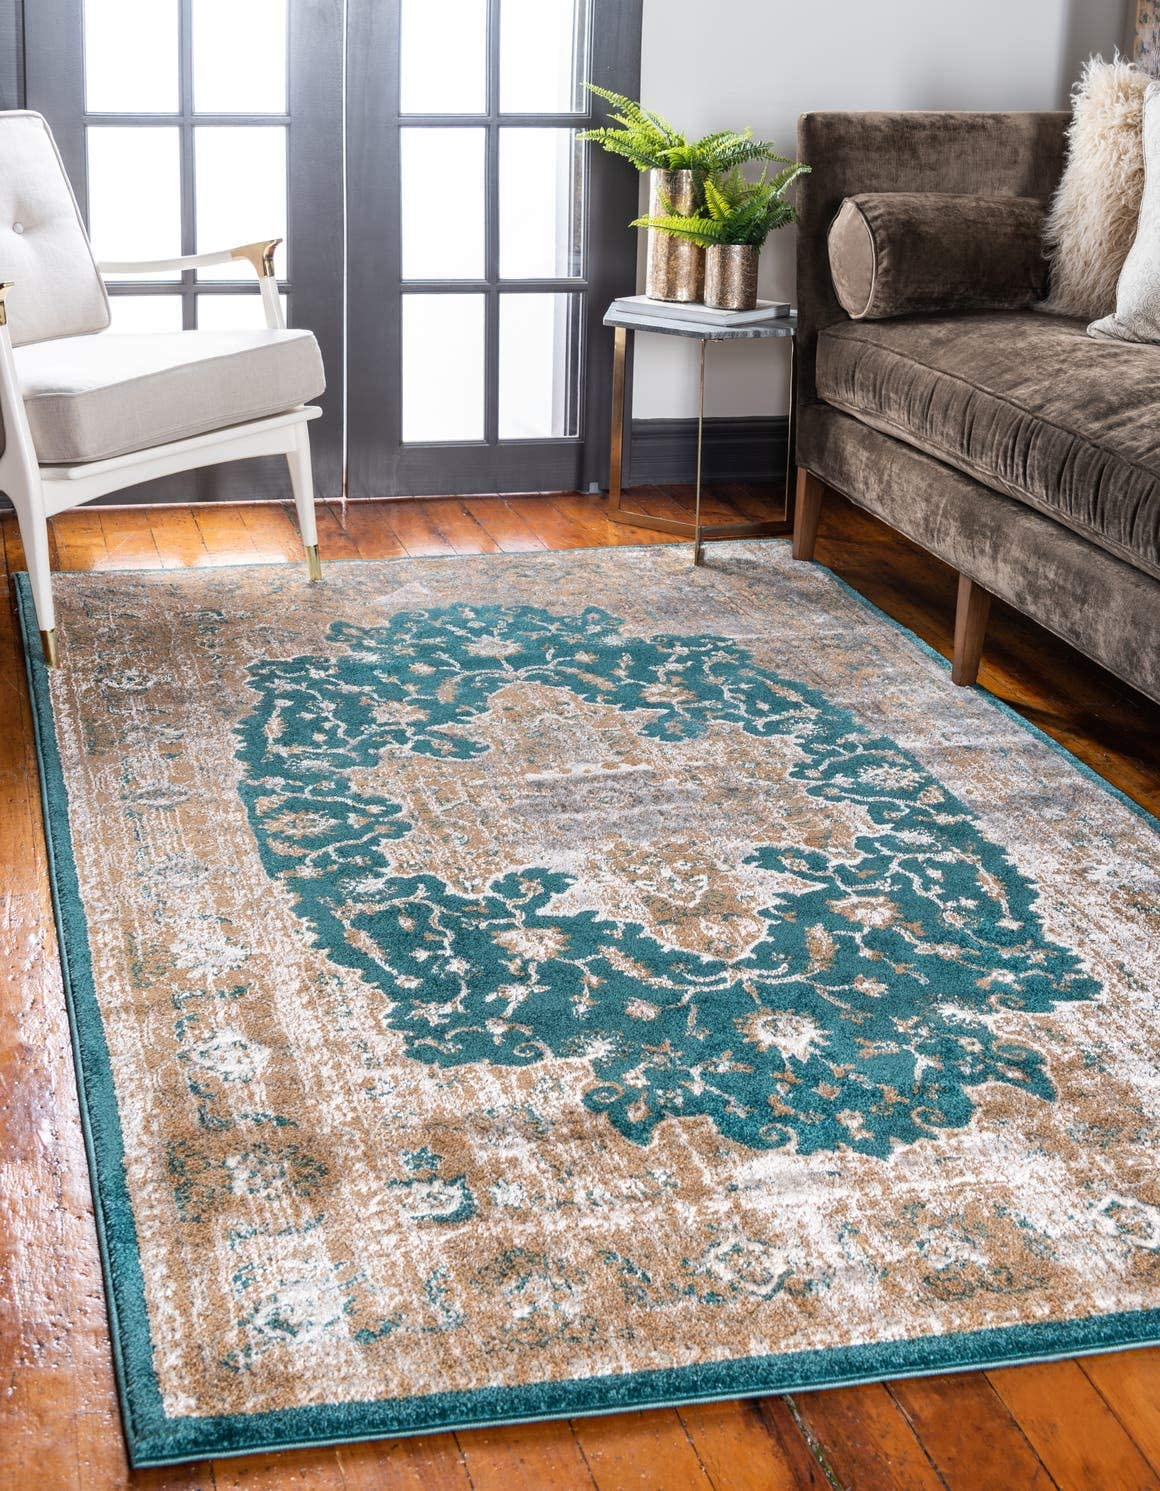 Unique Loom Aurora Collection Vintage Medallion Traditional Border Teal Area Rug 2 0 x 3 0